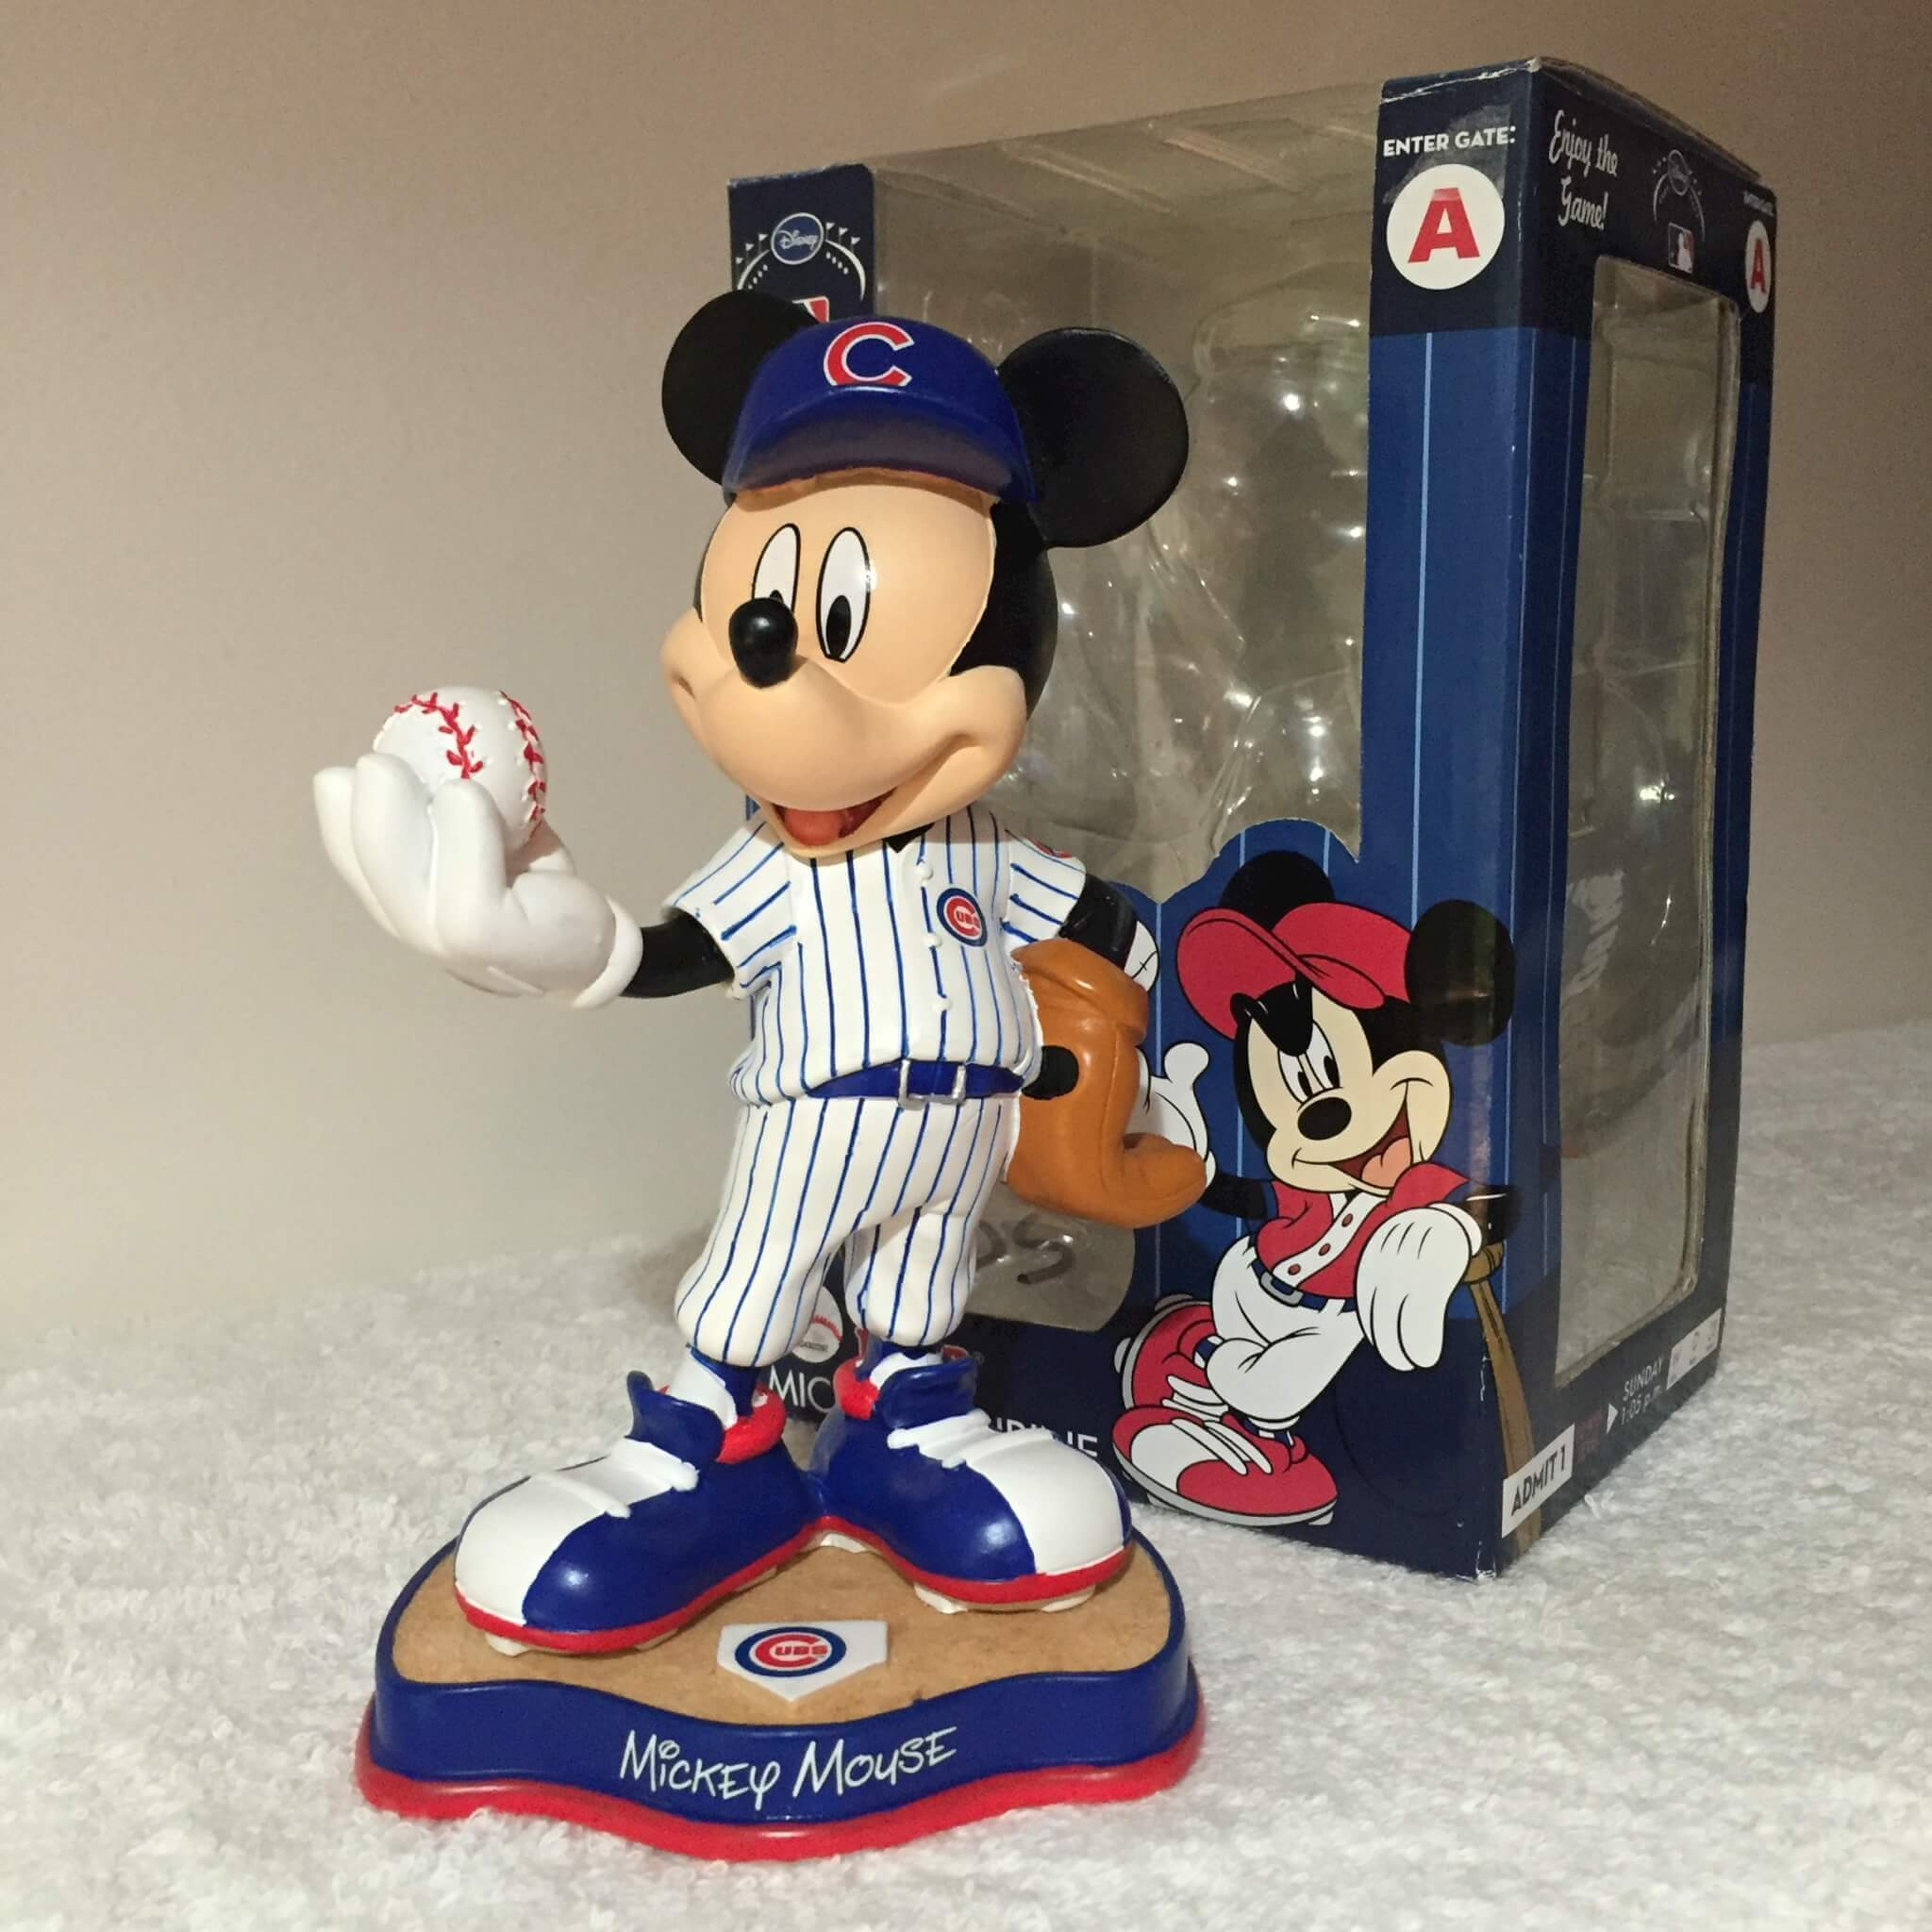 Cubs Mickey